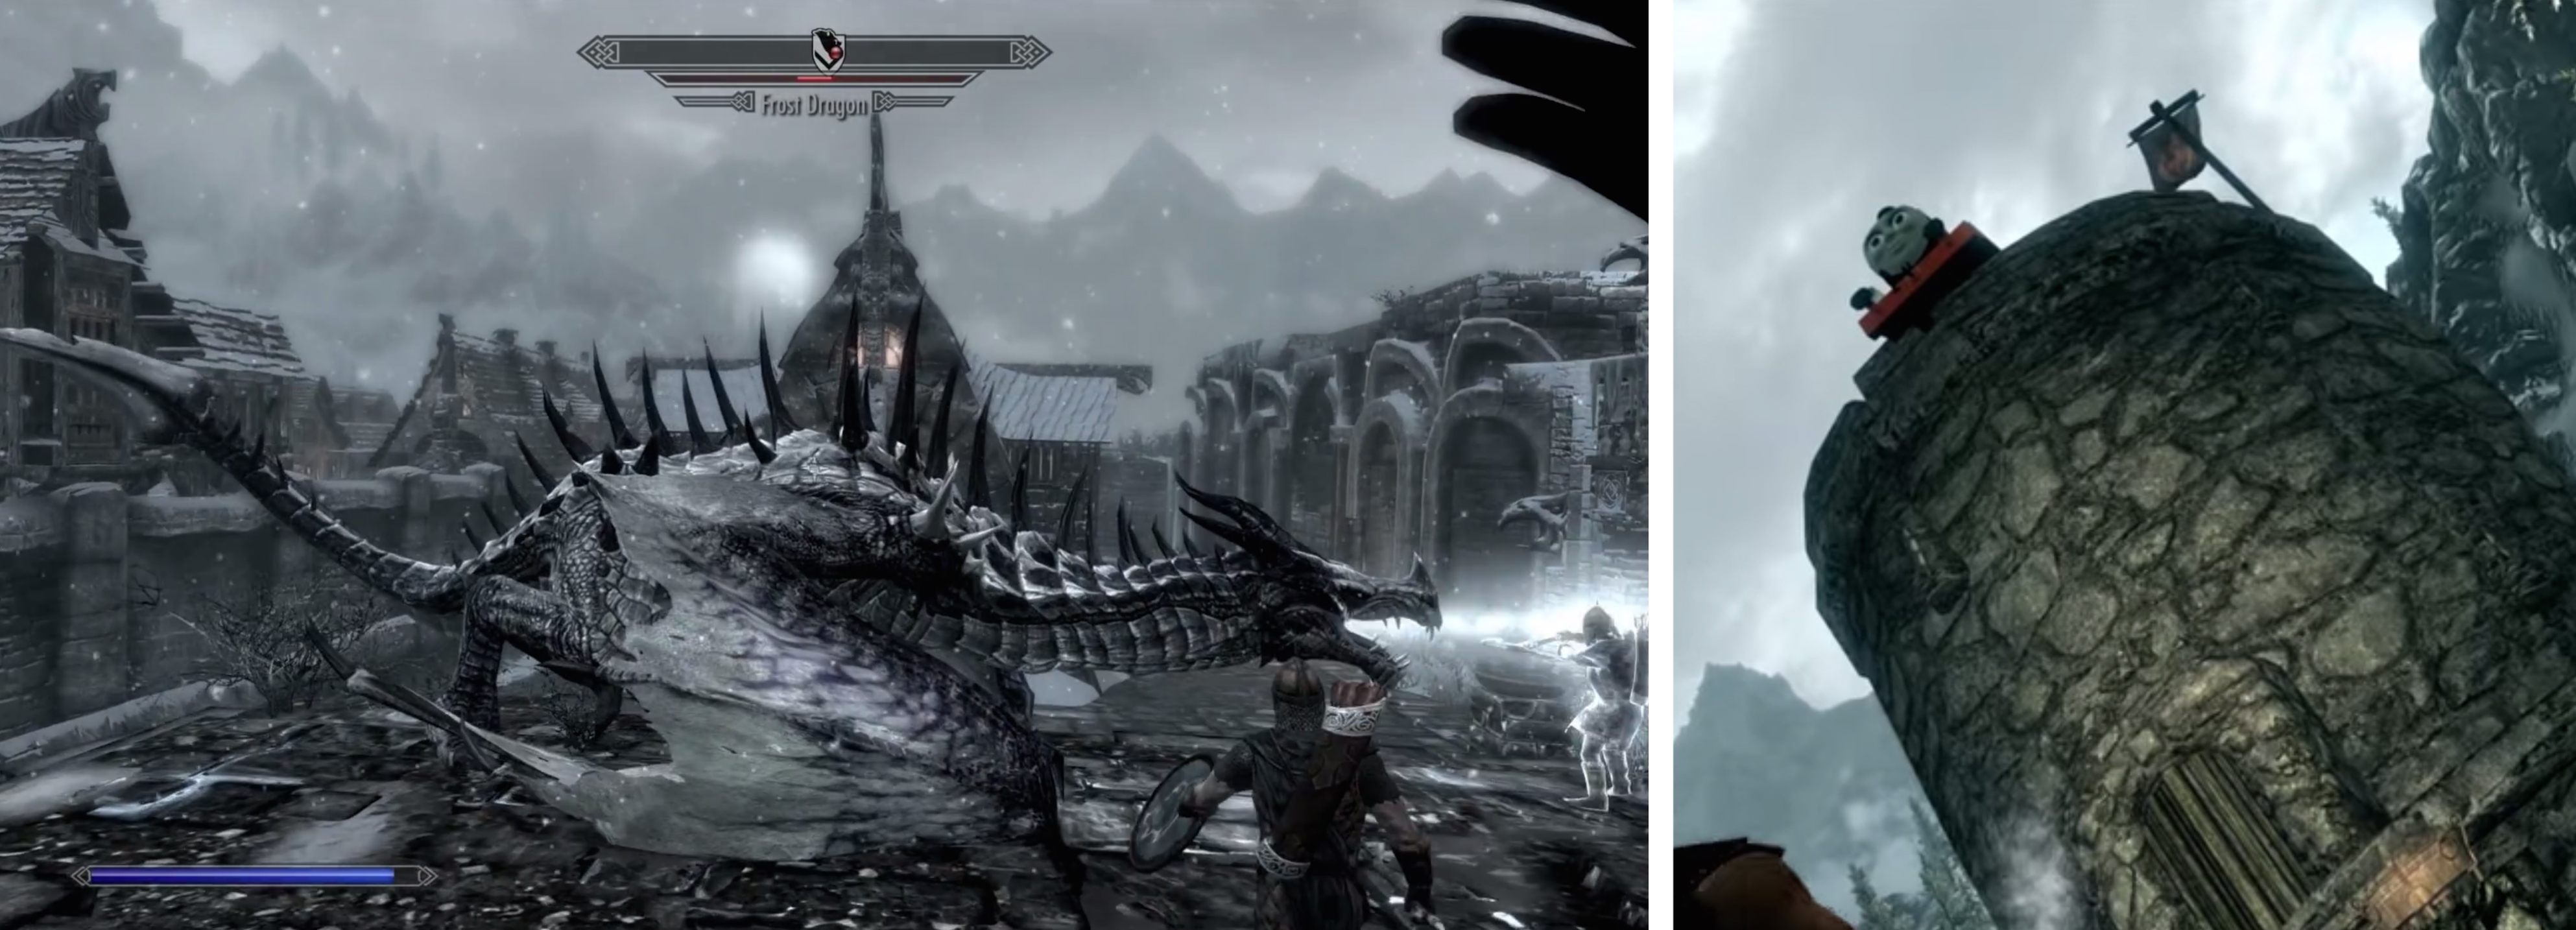 "[Left] A dragon and [right] Thomas the Tank Engine massacre a town in Skyrim, developed by Bethesda Game Studios, 2011. ""Really Useful Dragons"" Thomas the Tank Engine mod by Trainwiz and friends. Courtesy of the Internet."